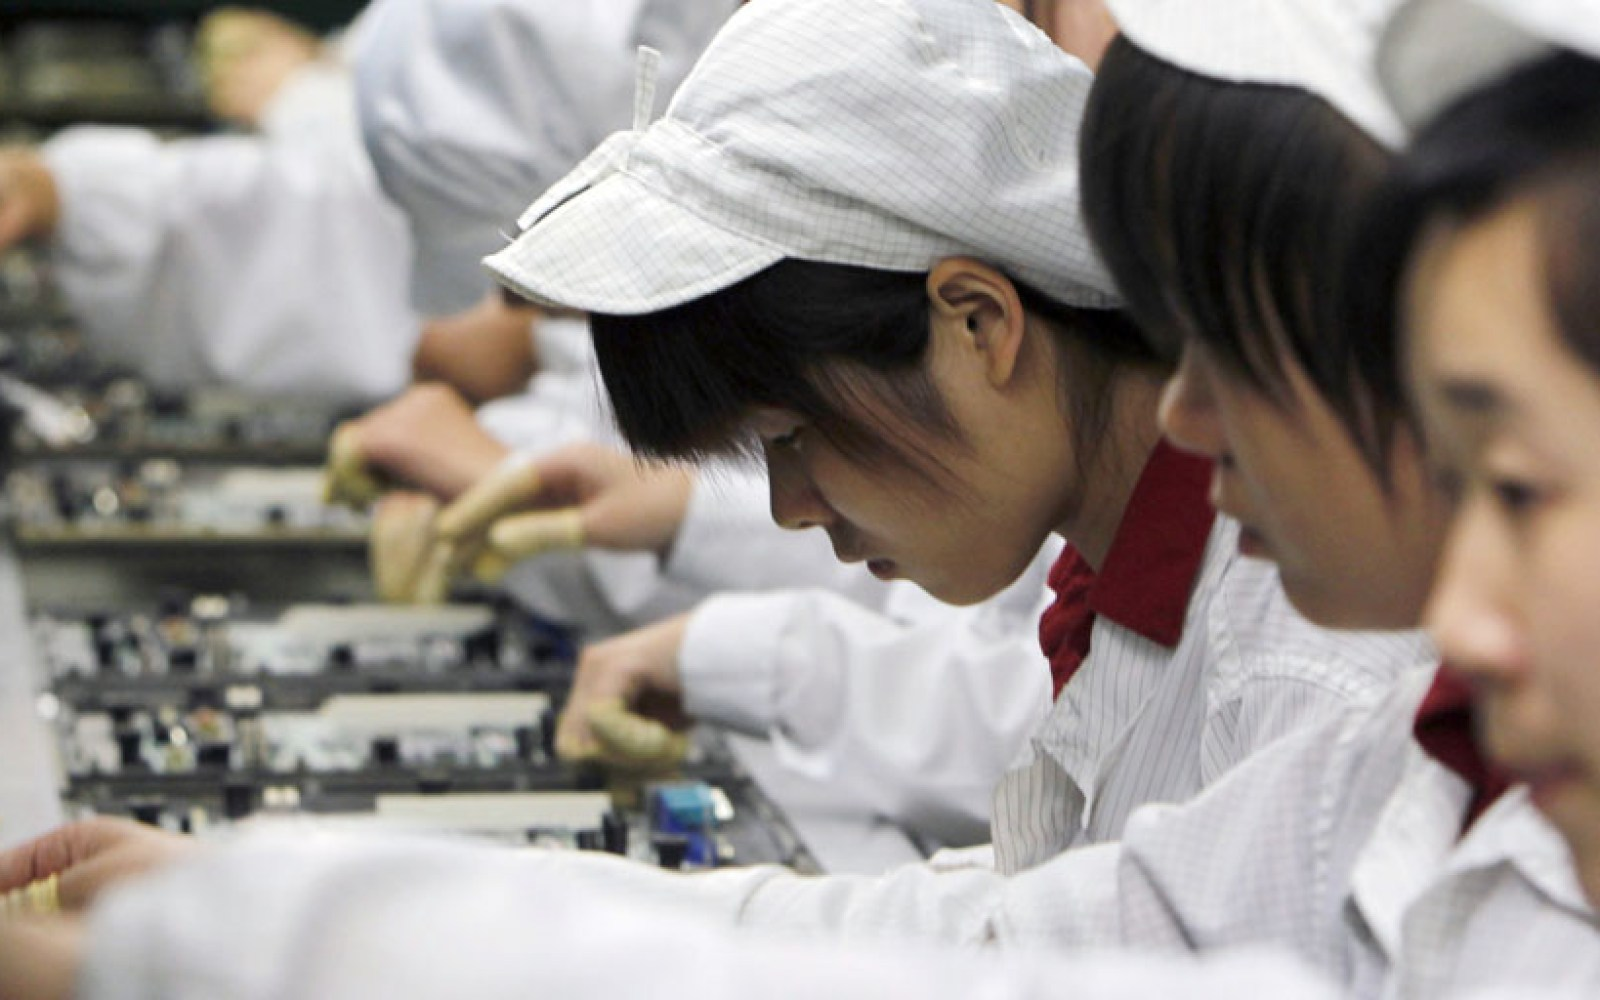 Majority of iPhone/iPad workers at Pegatron's Shanghai factory exceed 60-hour work limit, claims China Labor Watch